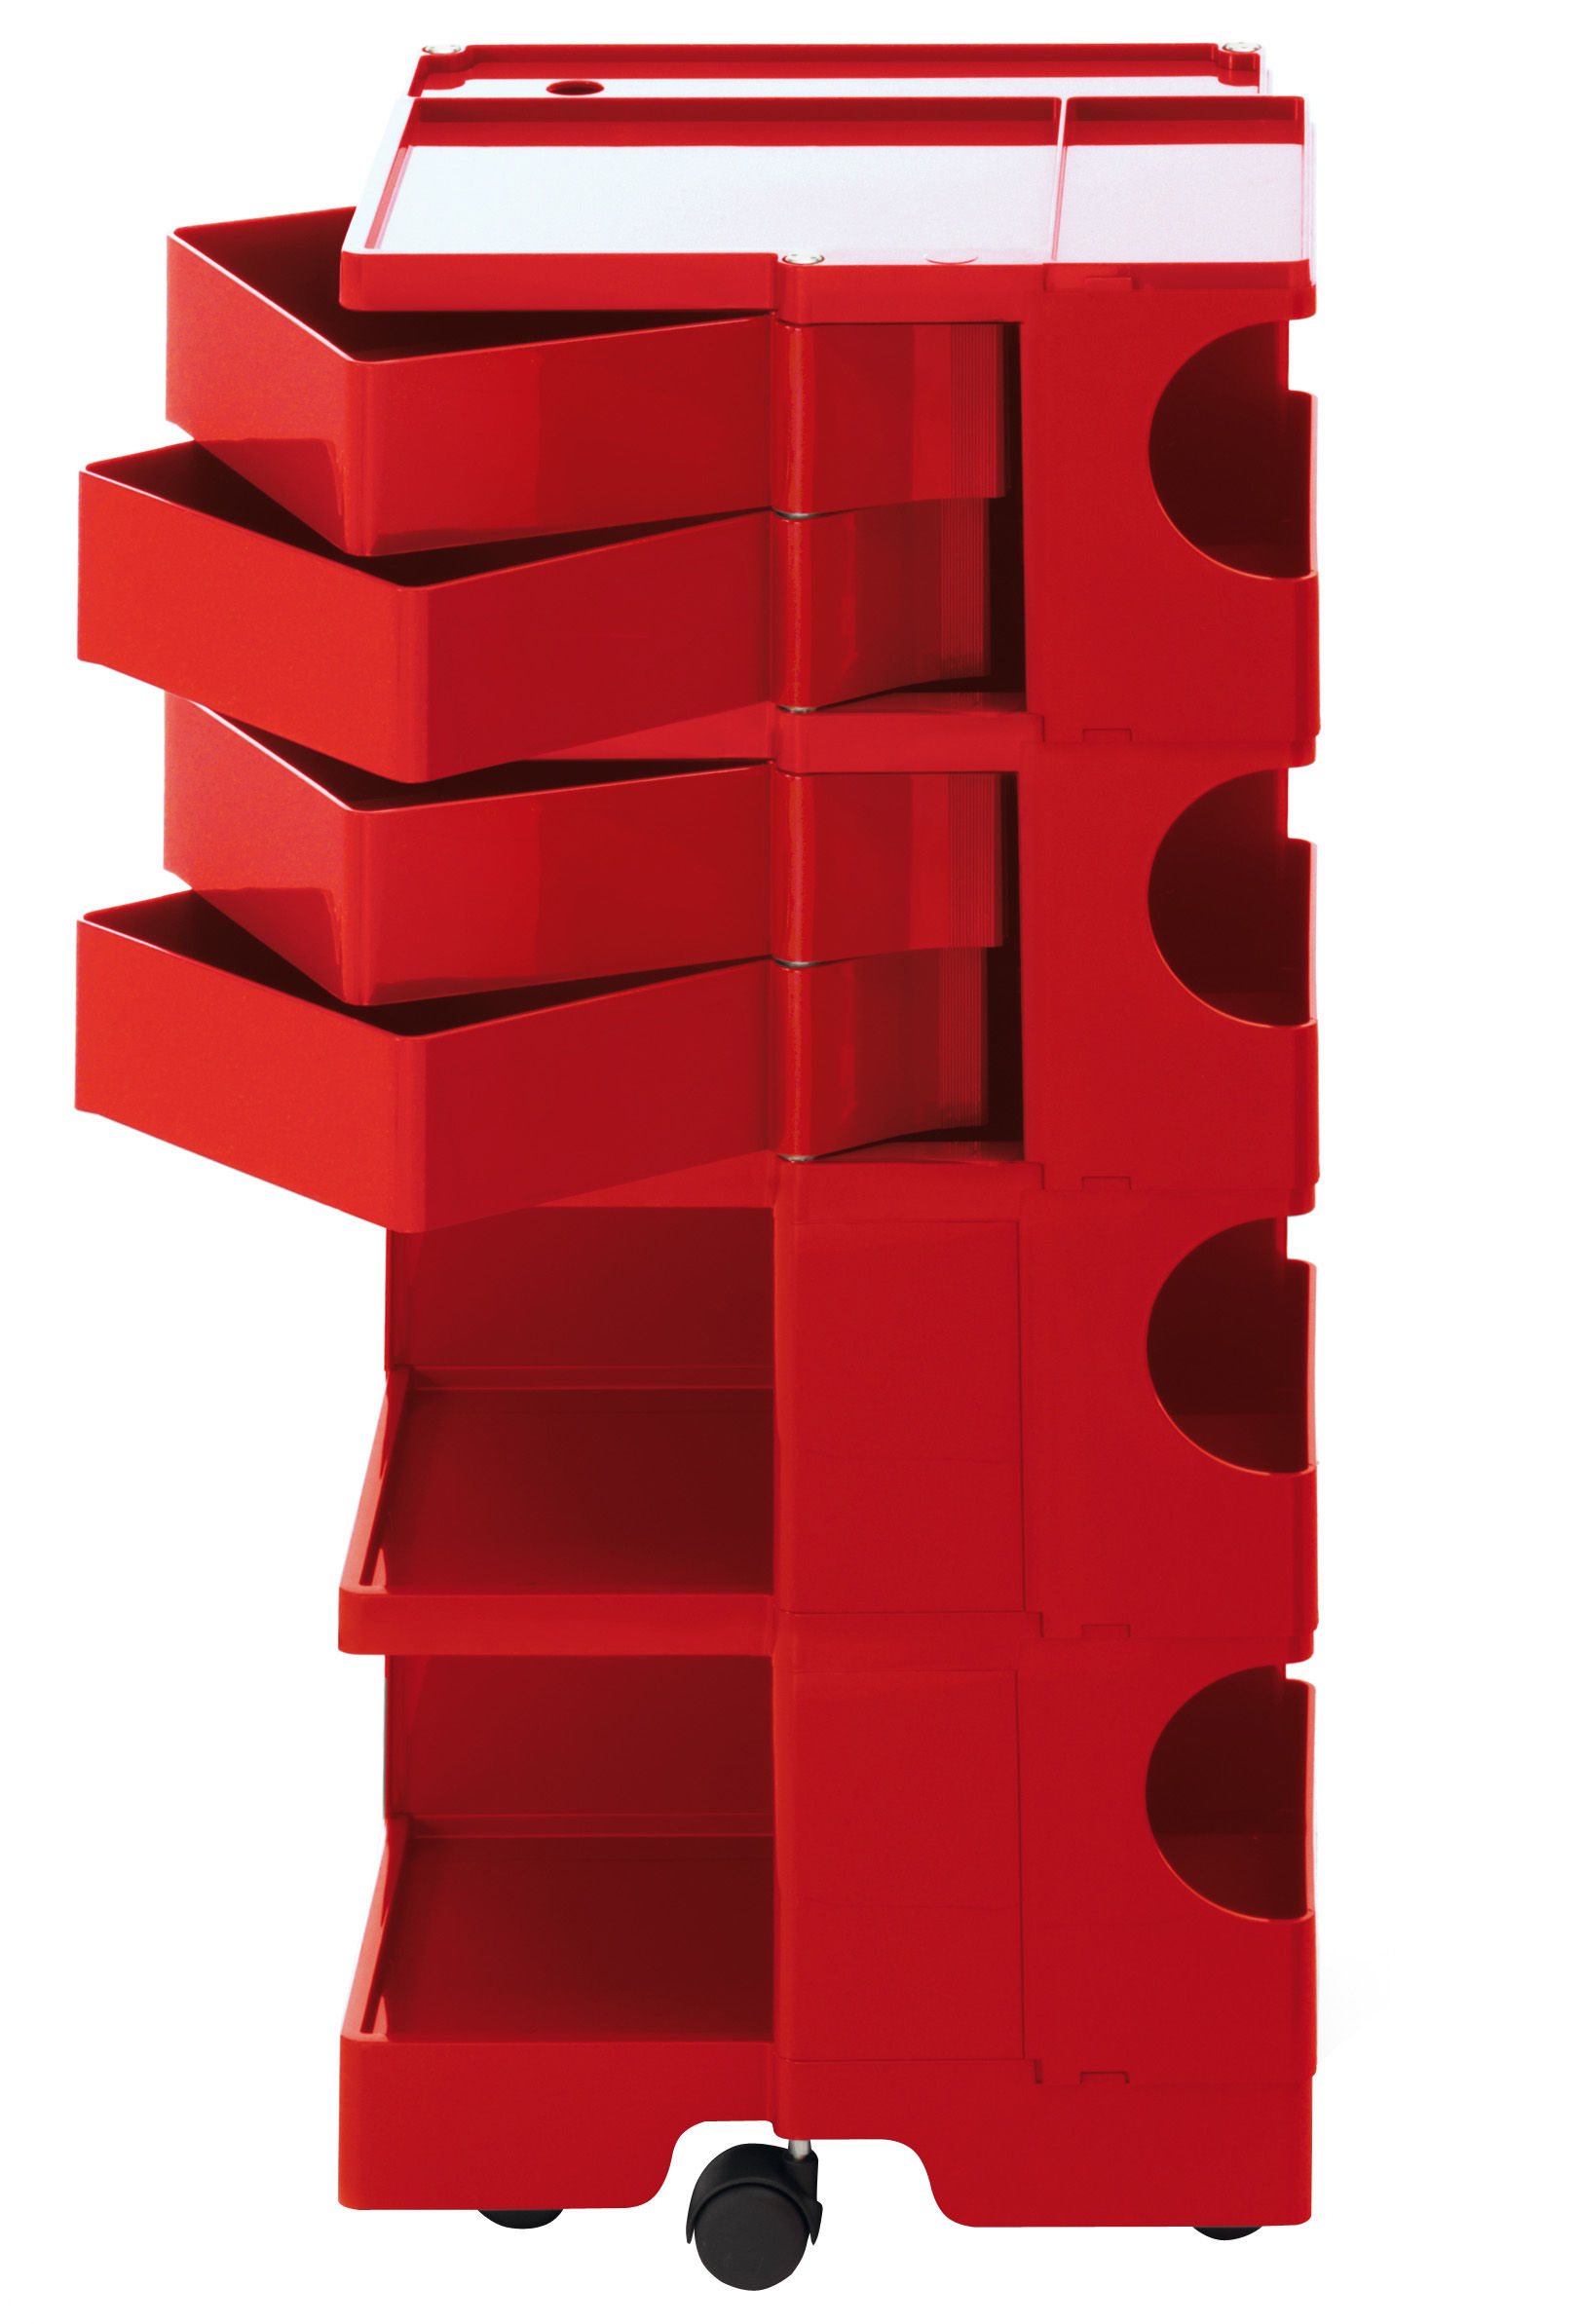 Furniture - Miscellaneous furniture - Boby Trolley - H 94 cm - 4 drawers by B-LINE - Red - ABS